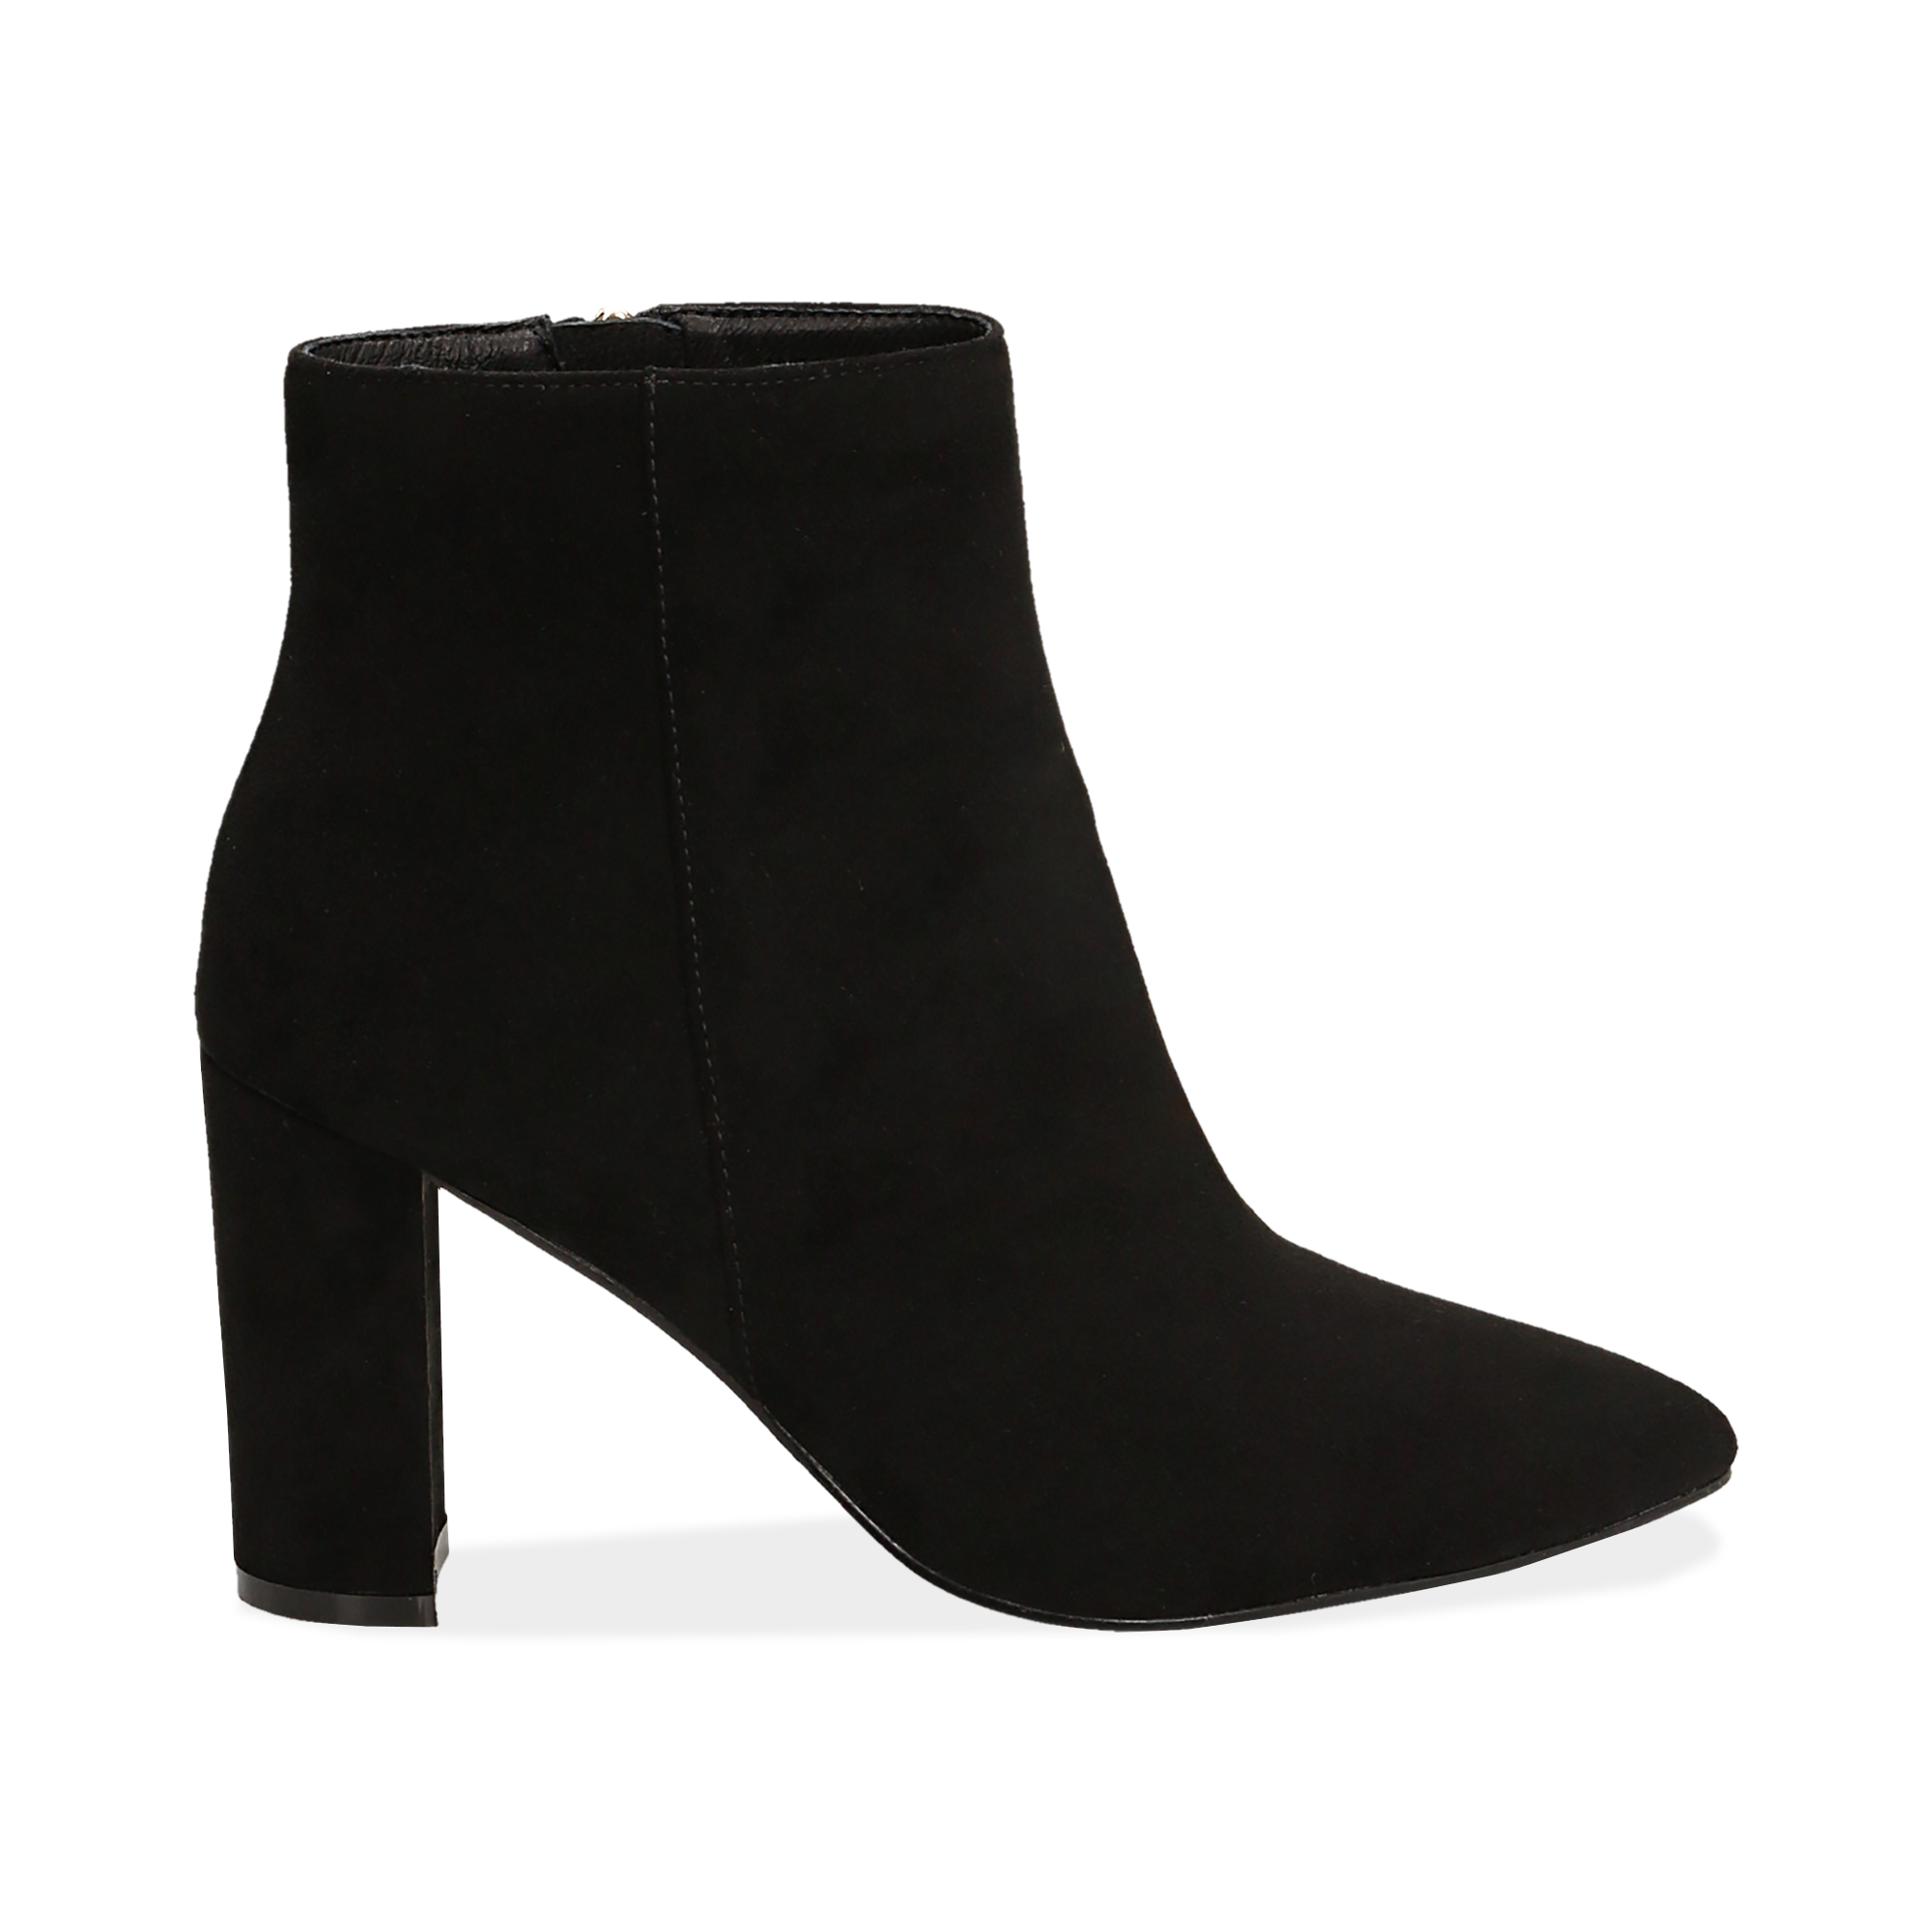 Ankle boots neri in microfibra, tacco 8,5 cm